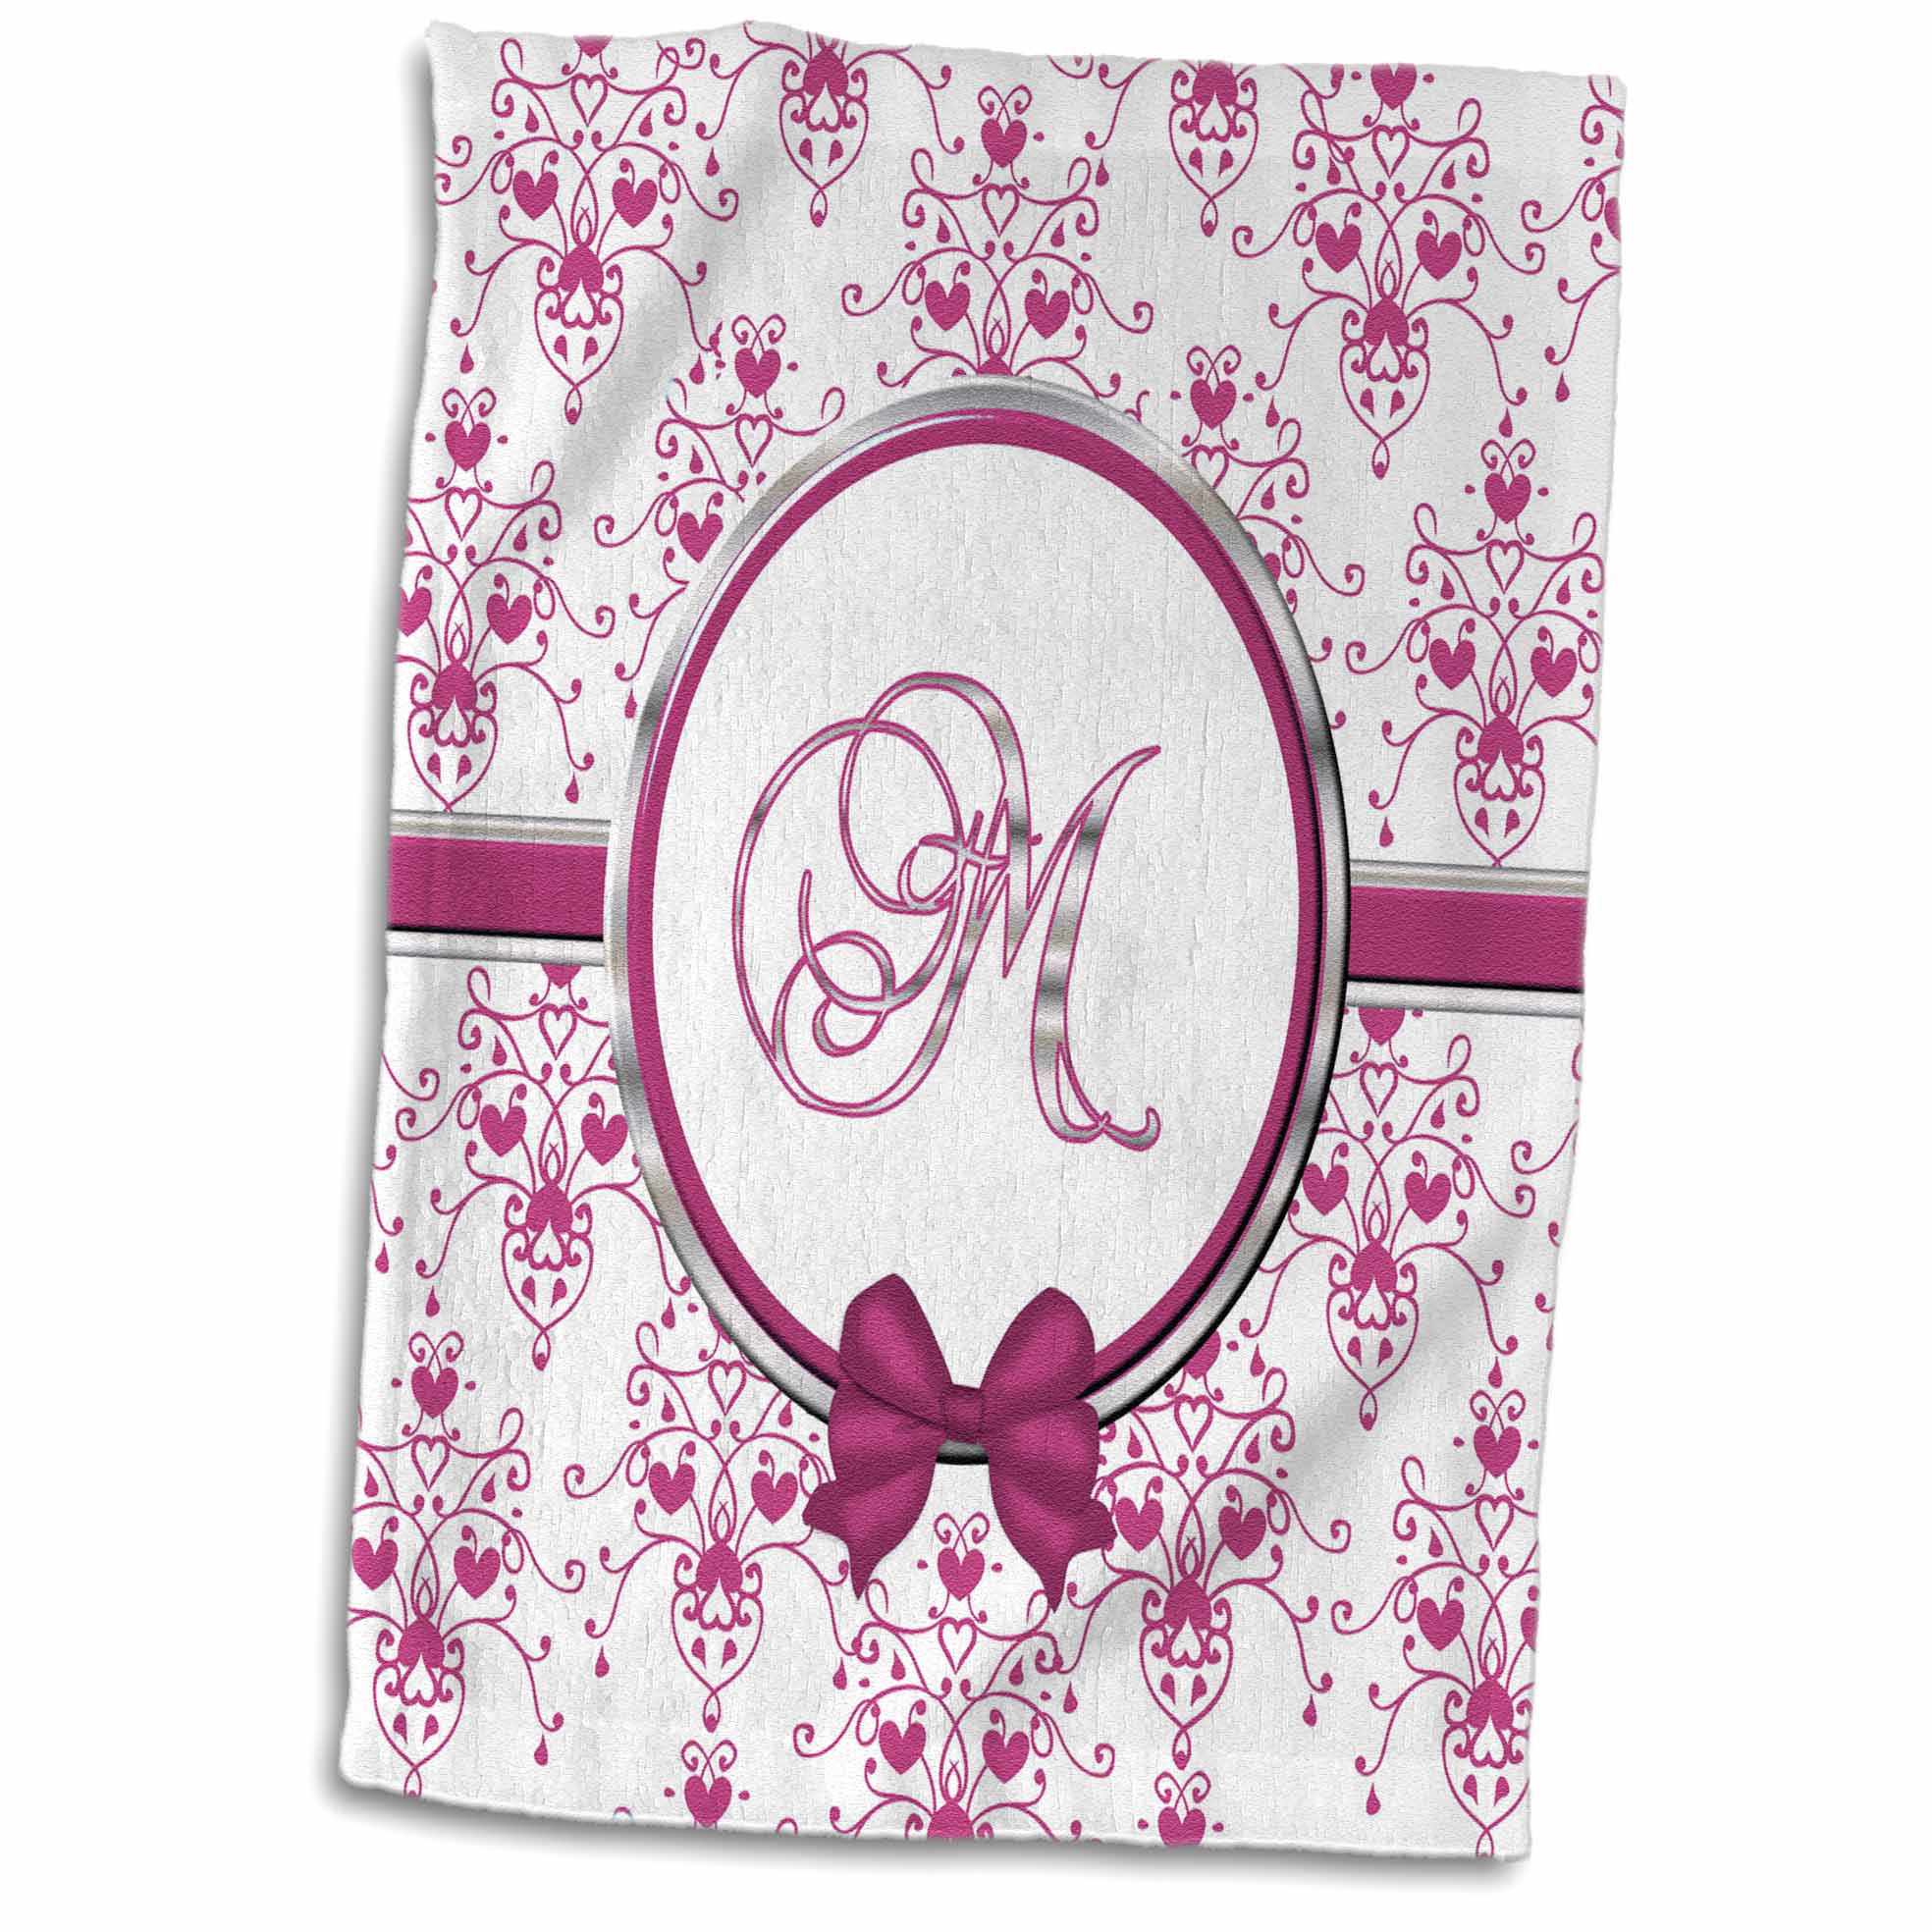 3dRose Elegant Pink and Silver Heart Damask Monogram Letter M - Towel, 15 by 22-inch